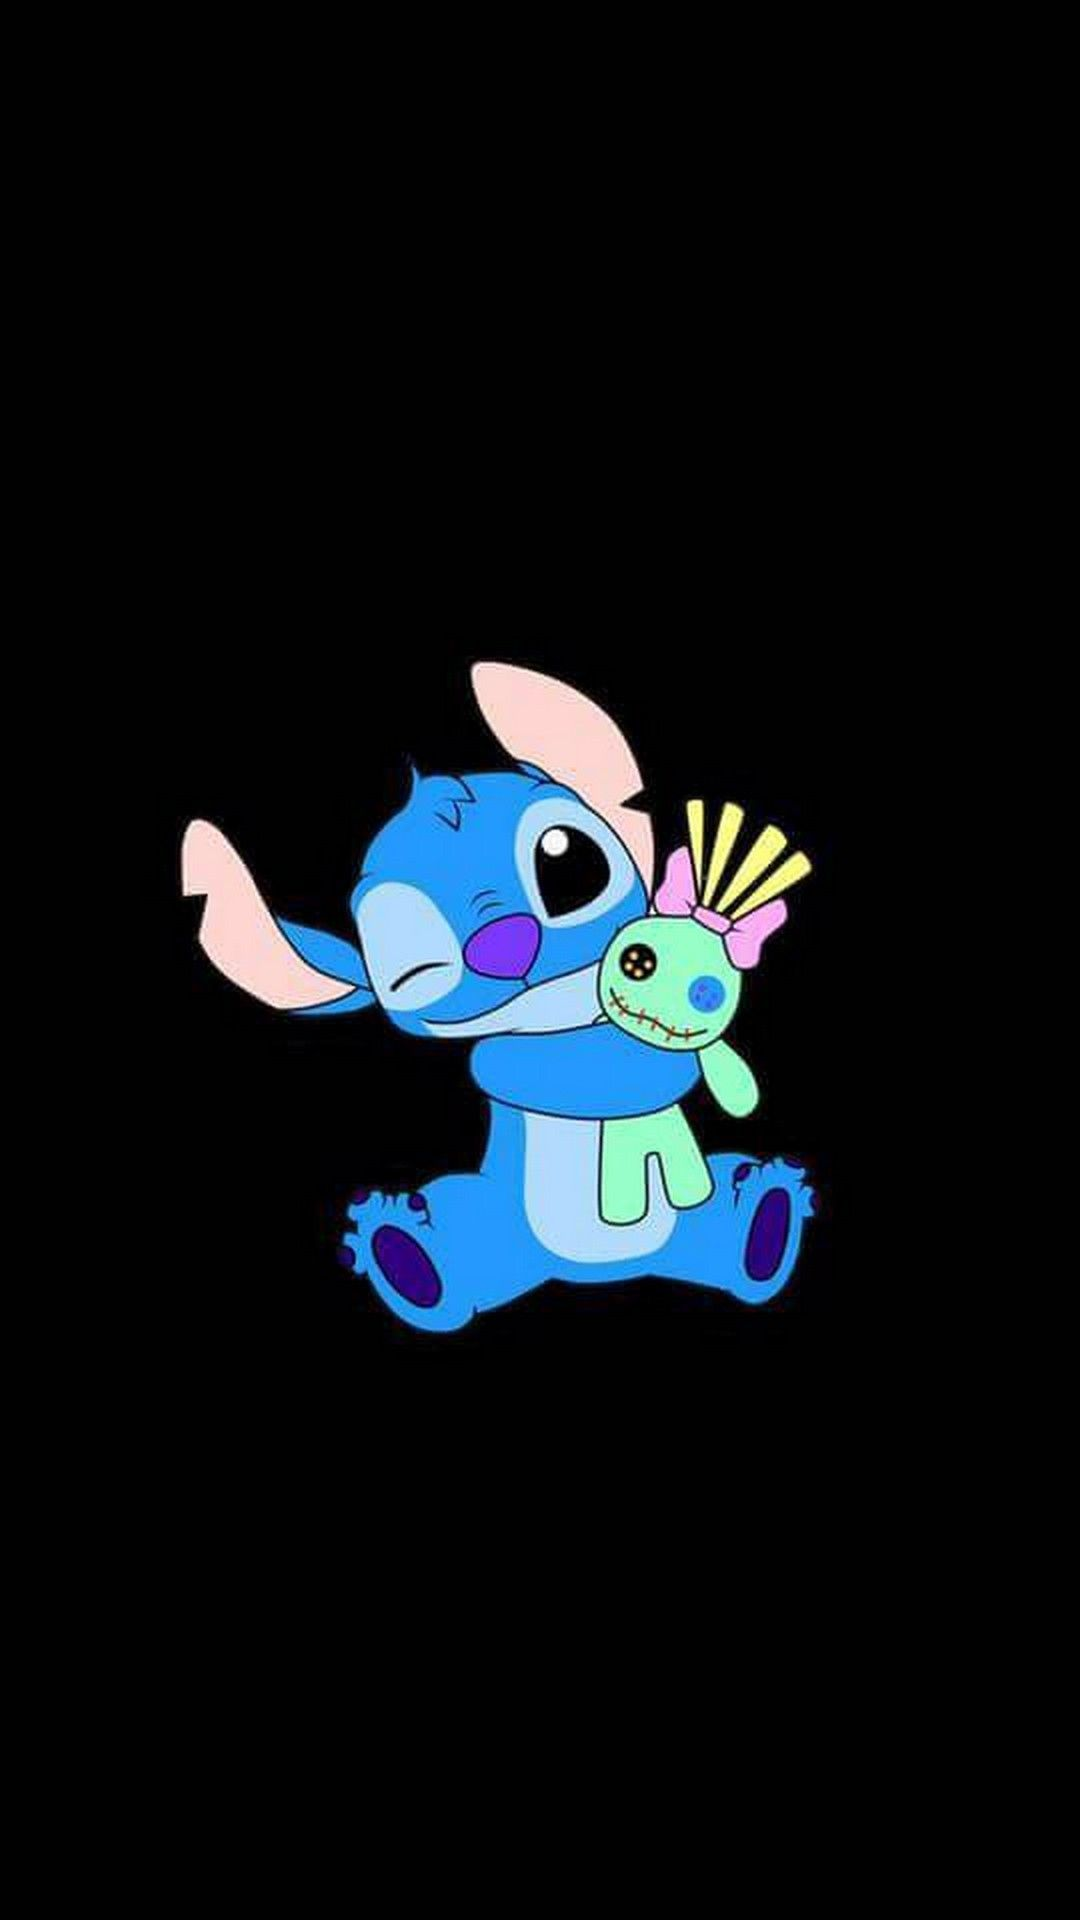 Stitch Hd Wallpapers para móvil - Stitch Wallpaper Iphone Black